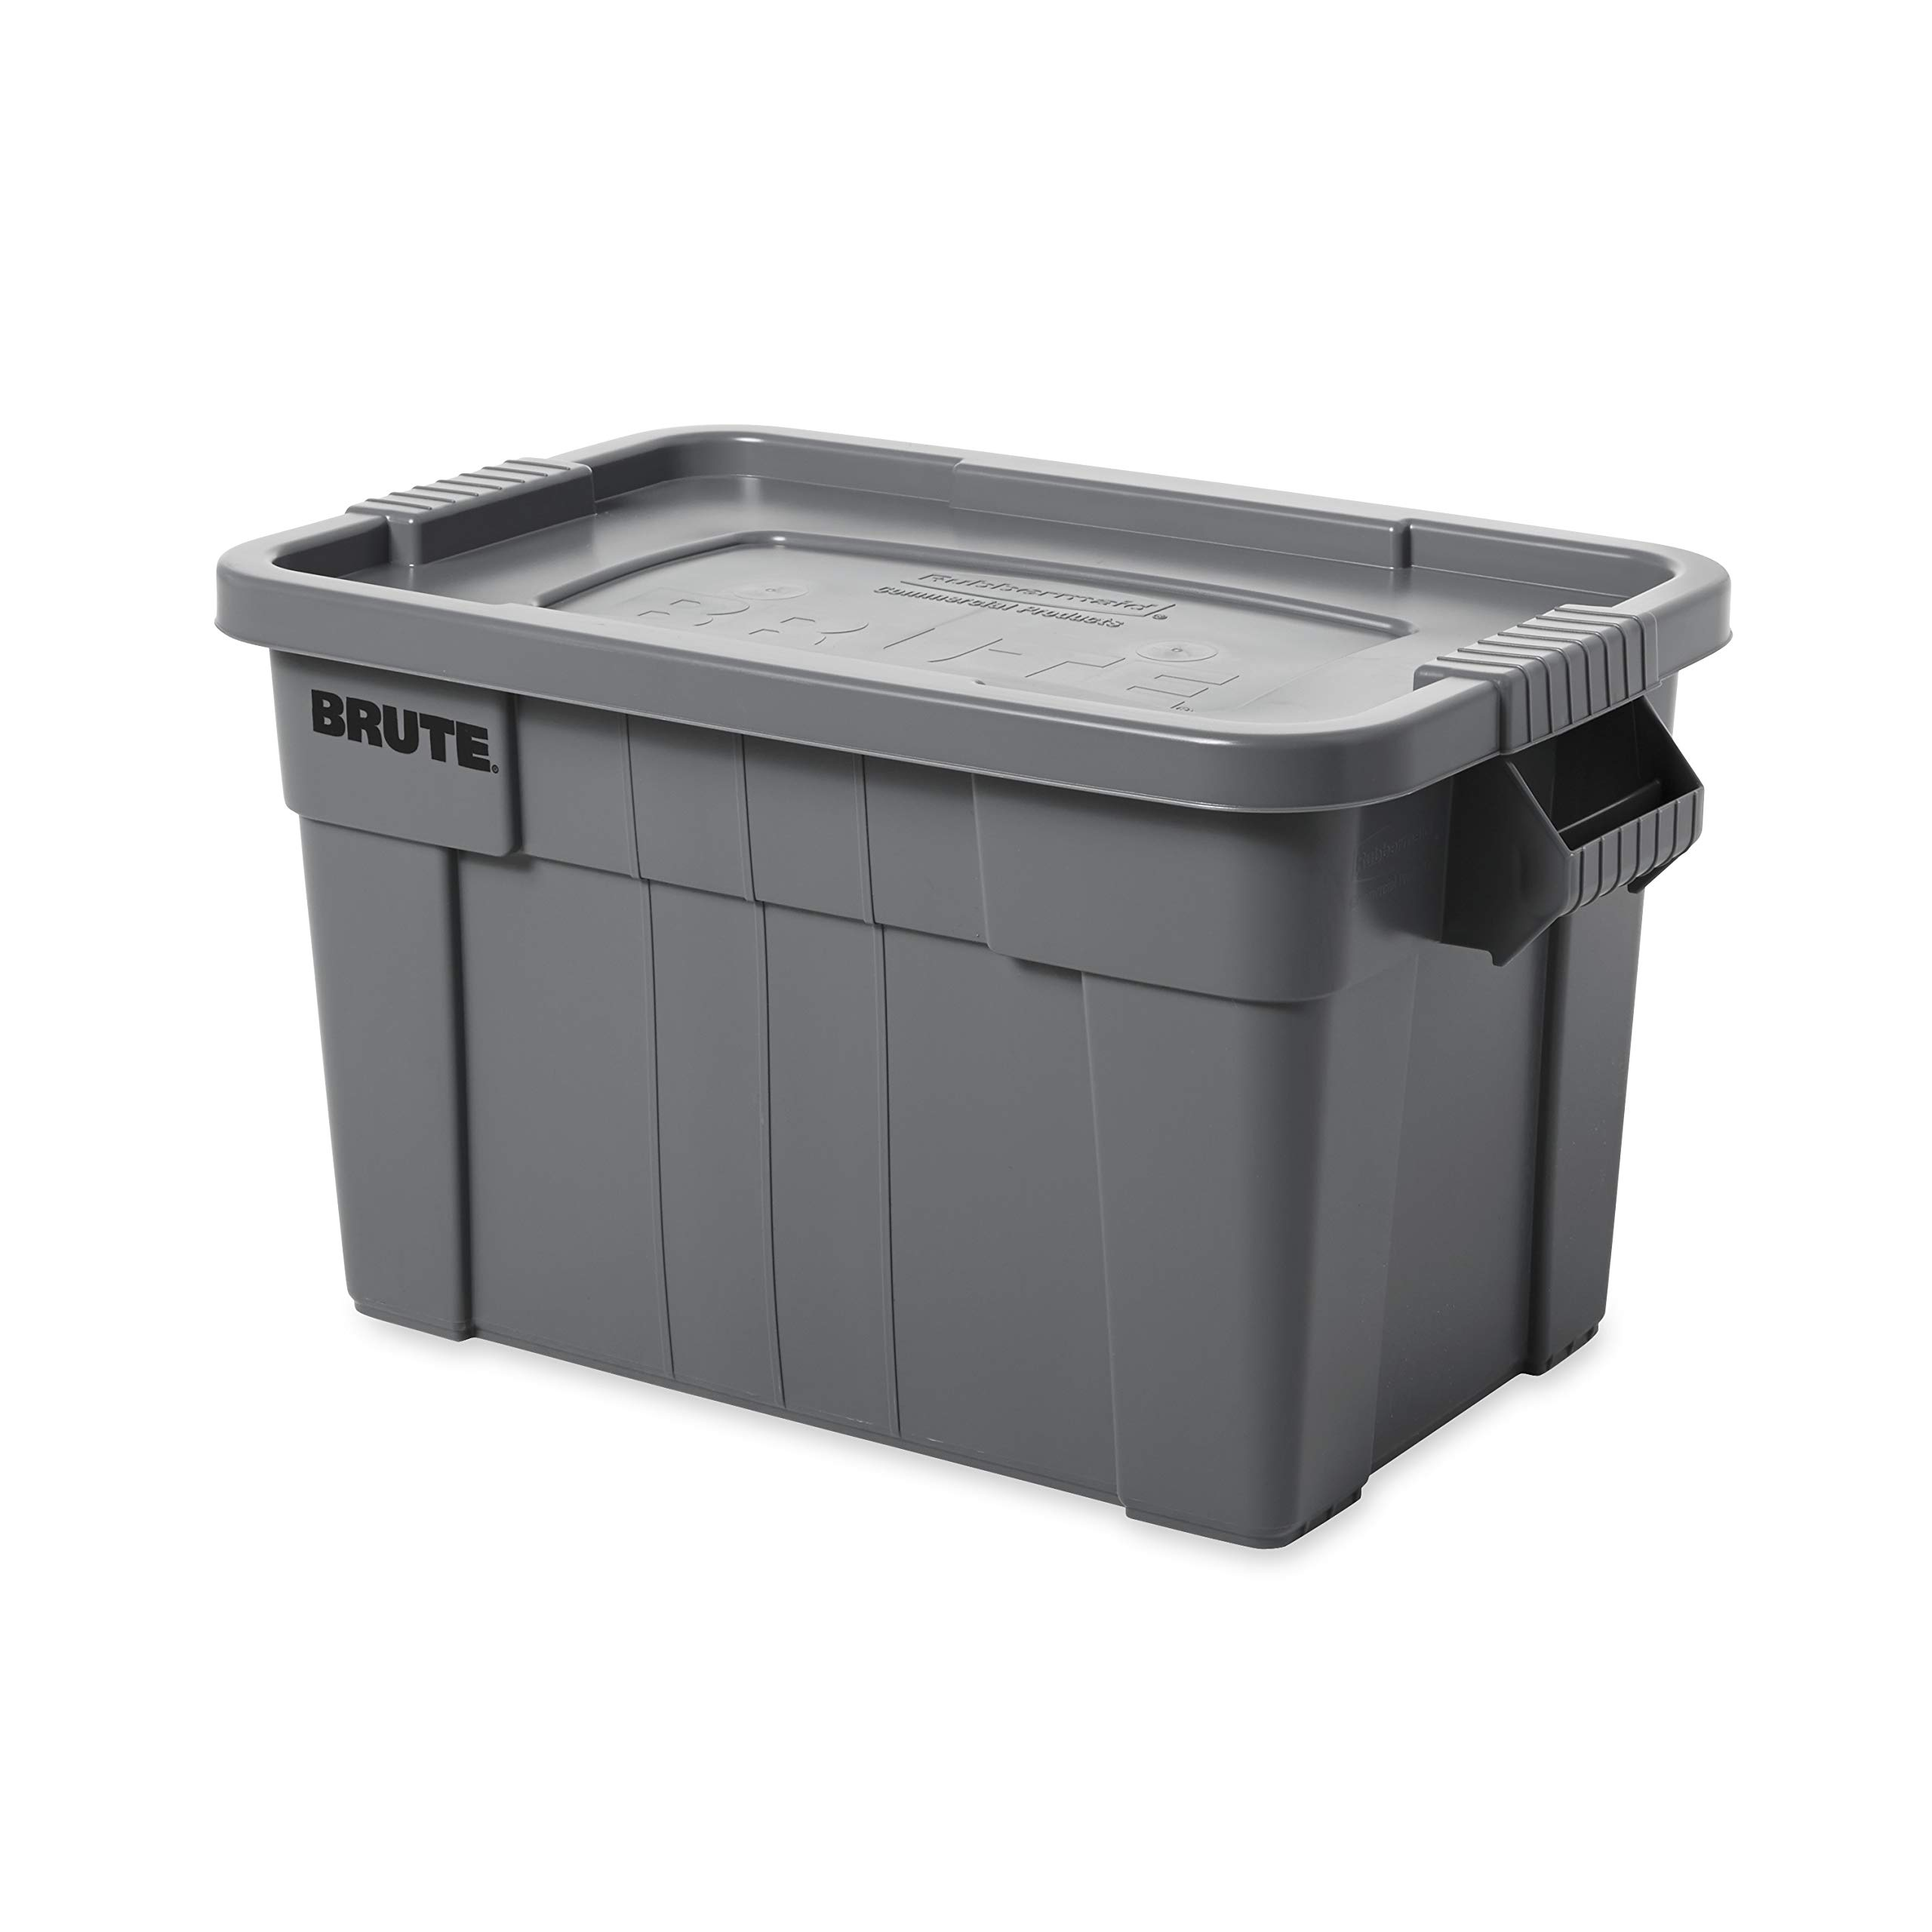 Rubbermaid Commercial Products Brute Tote Storage Container With Lid, 20-Gallon, Gray (Fg9S3100Gray) by Rubbermaid Commercial Products